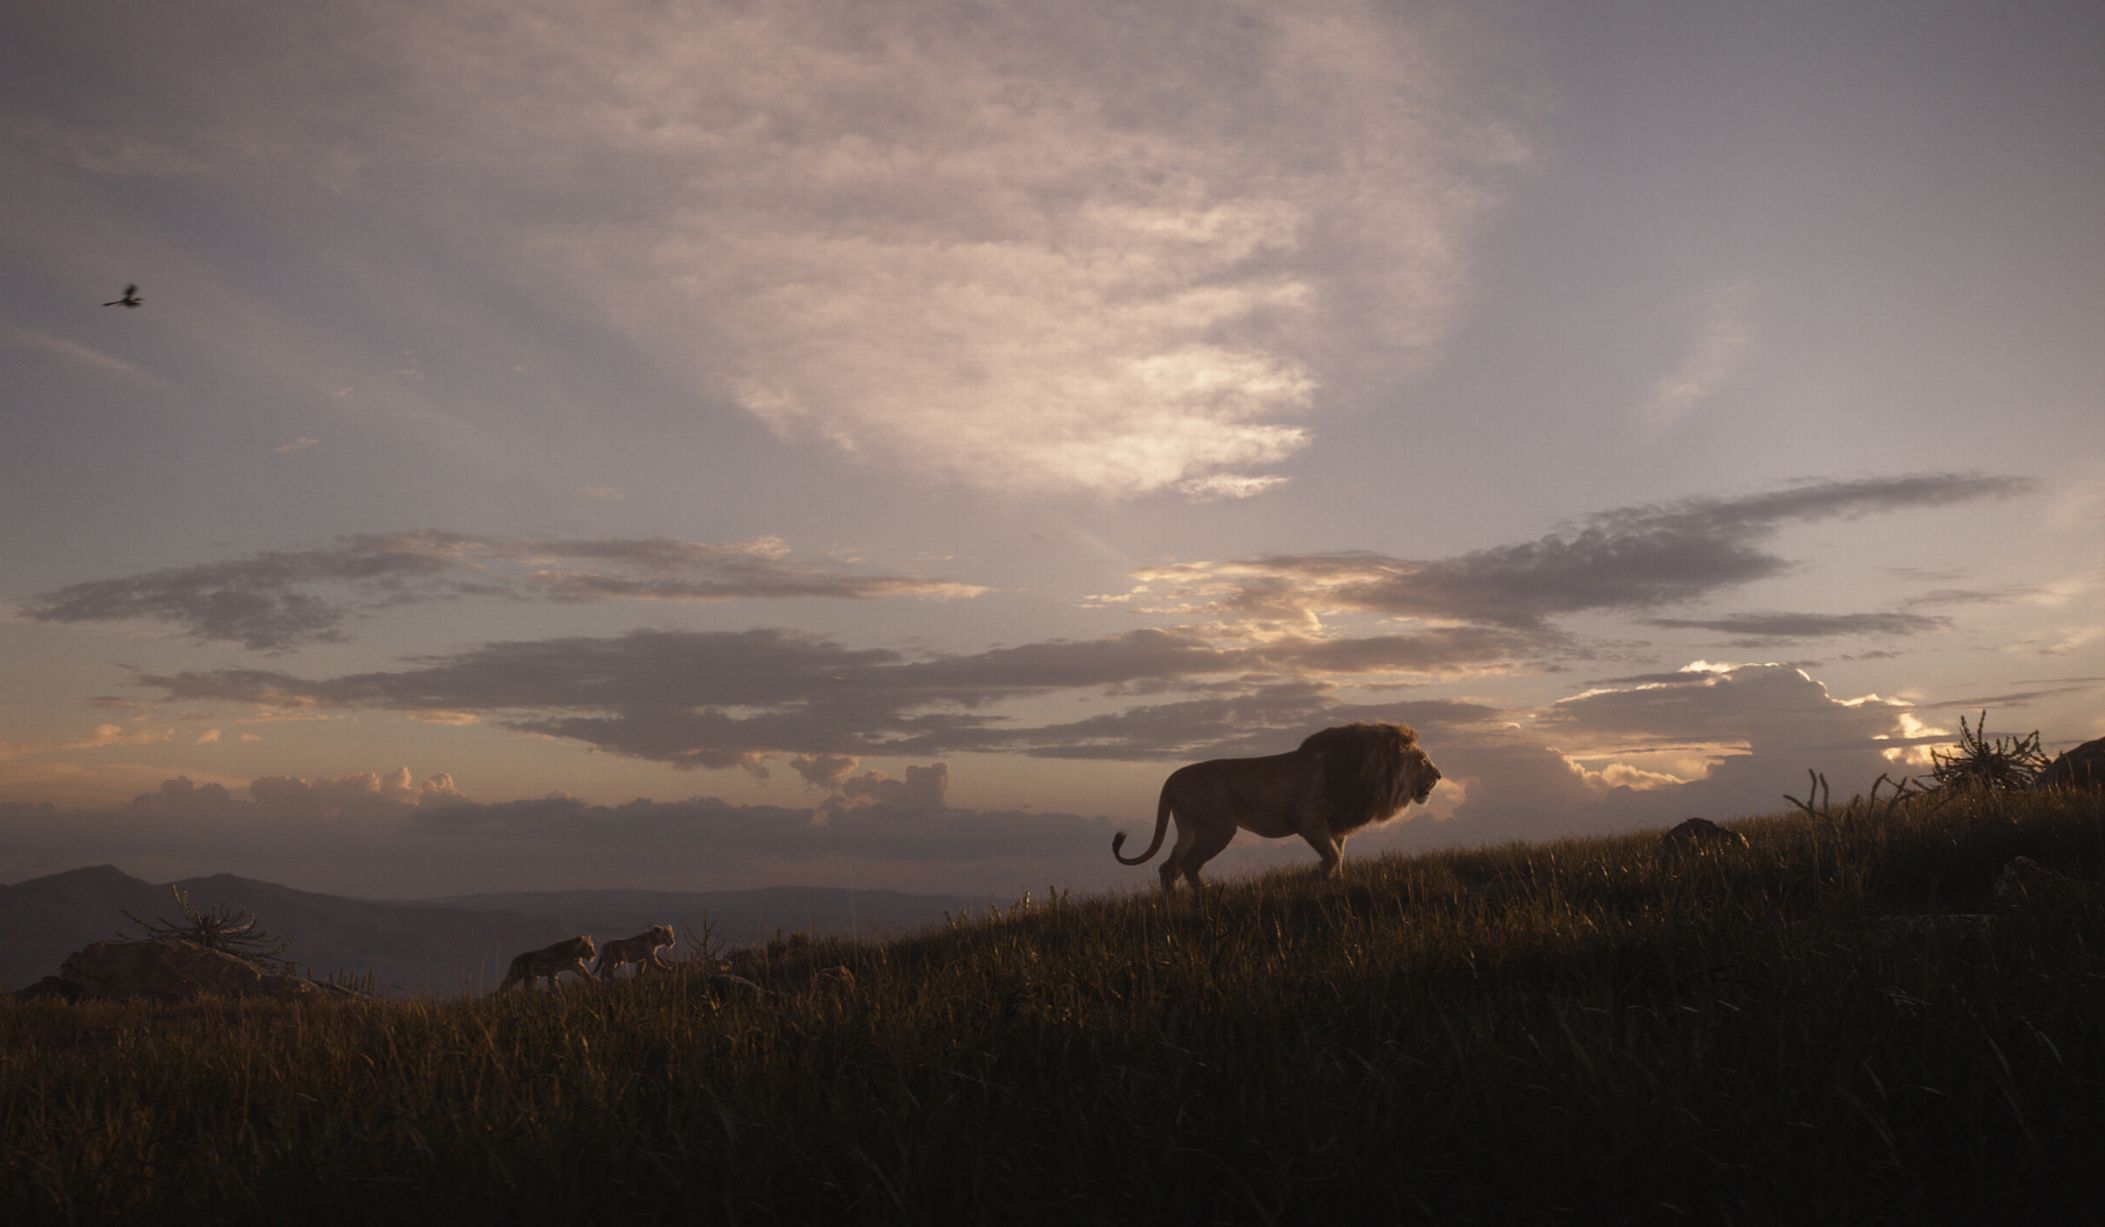 The sights and sounds of Africa are seen throughout the film.